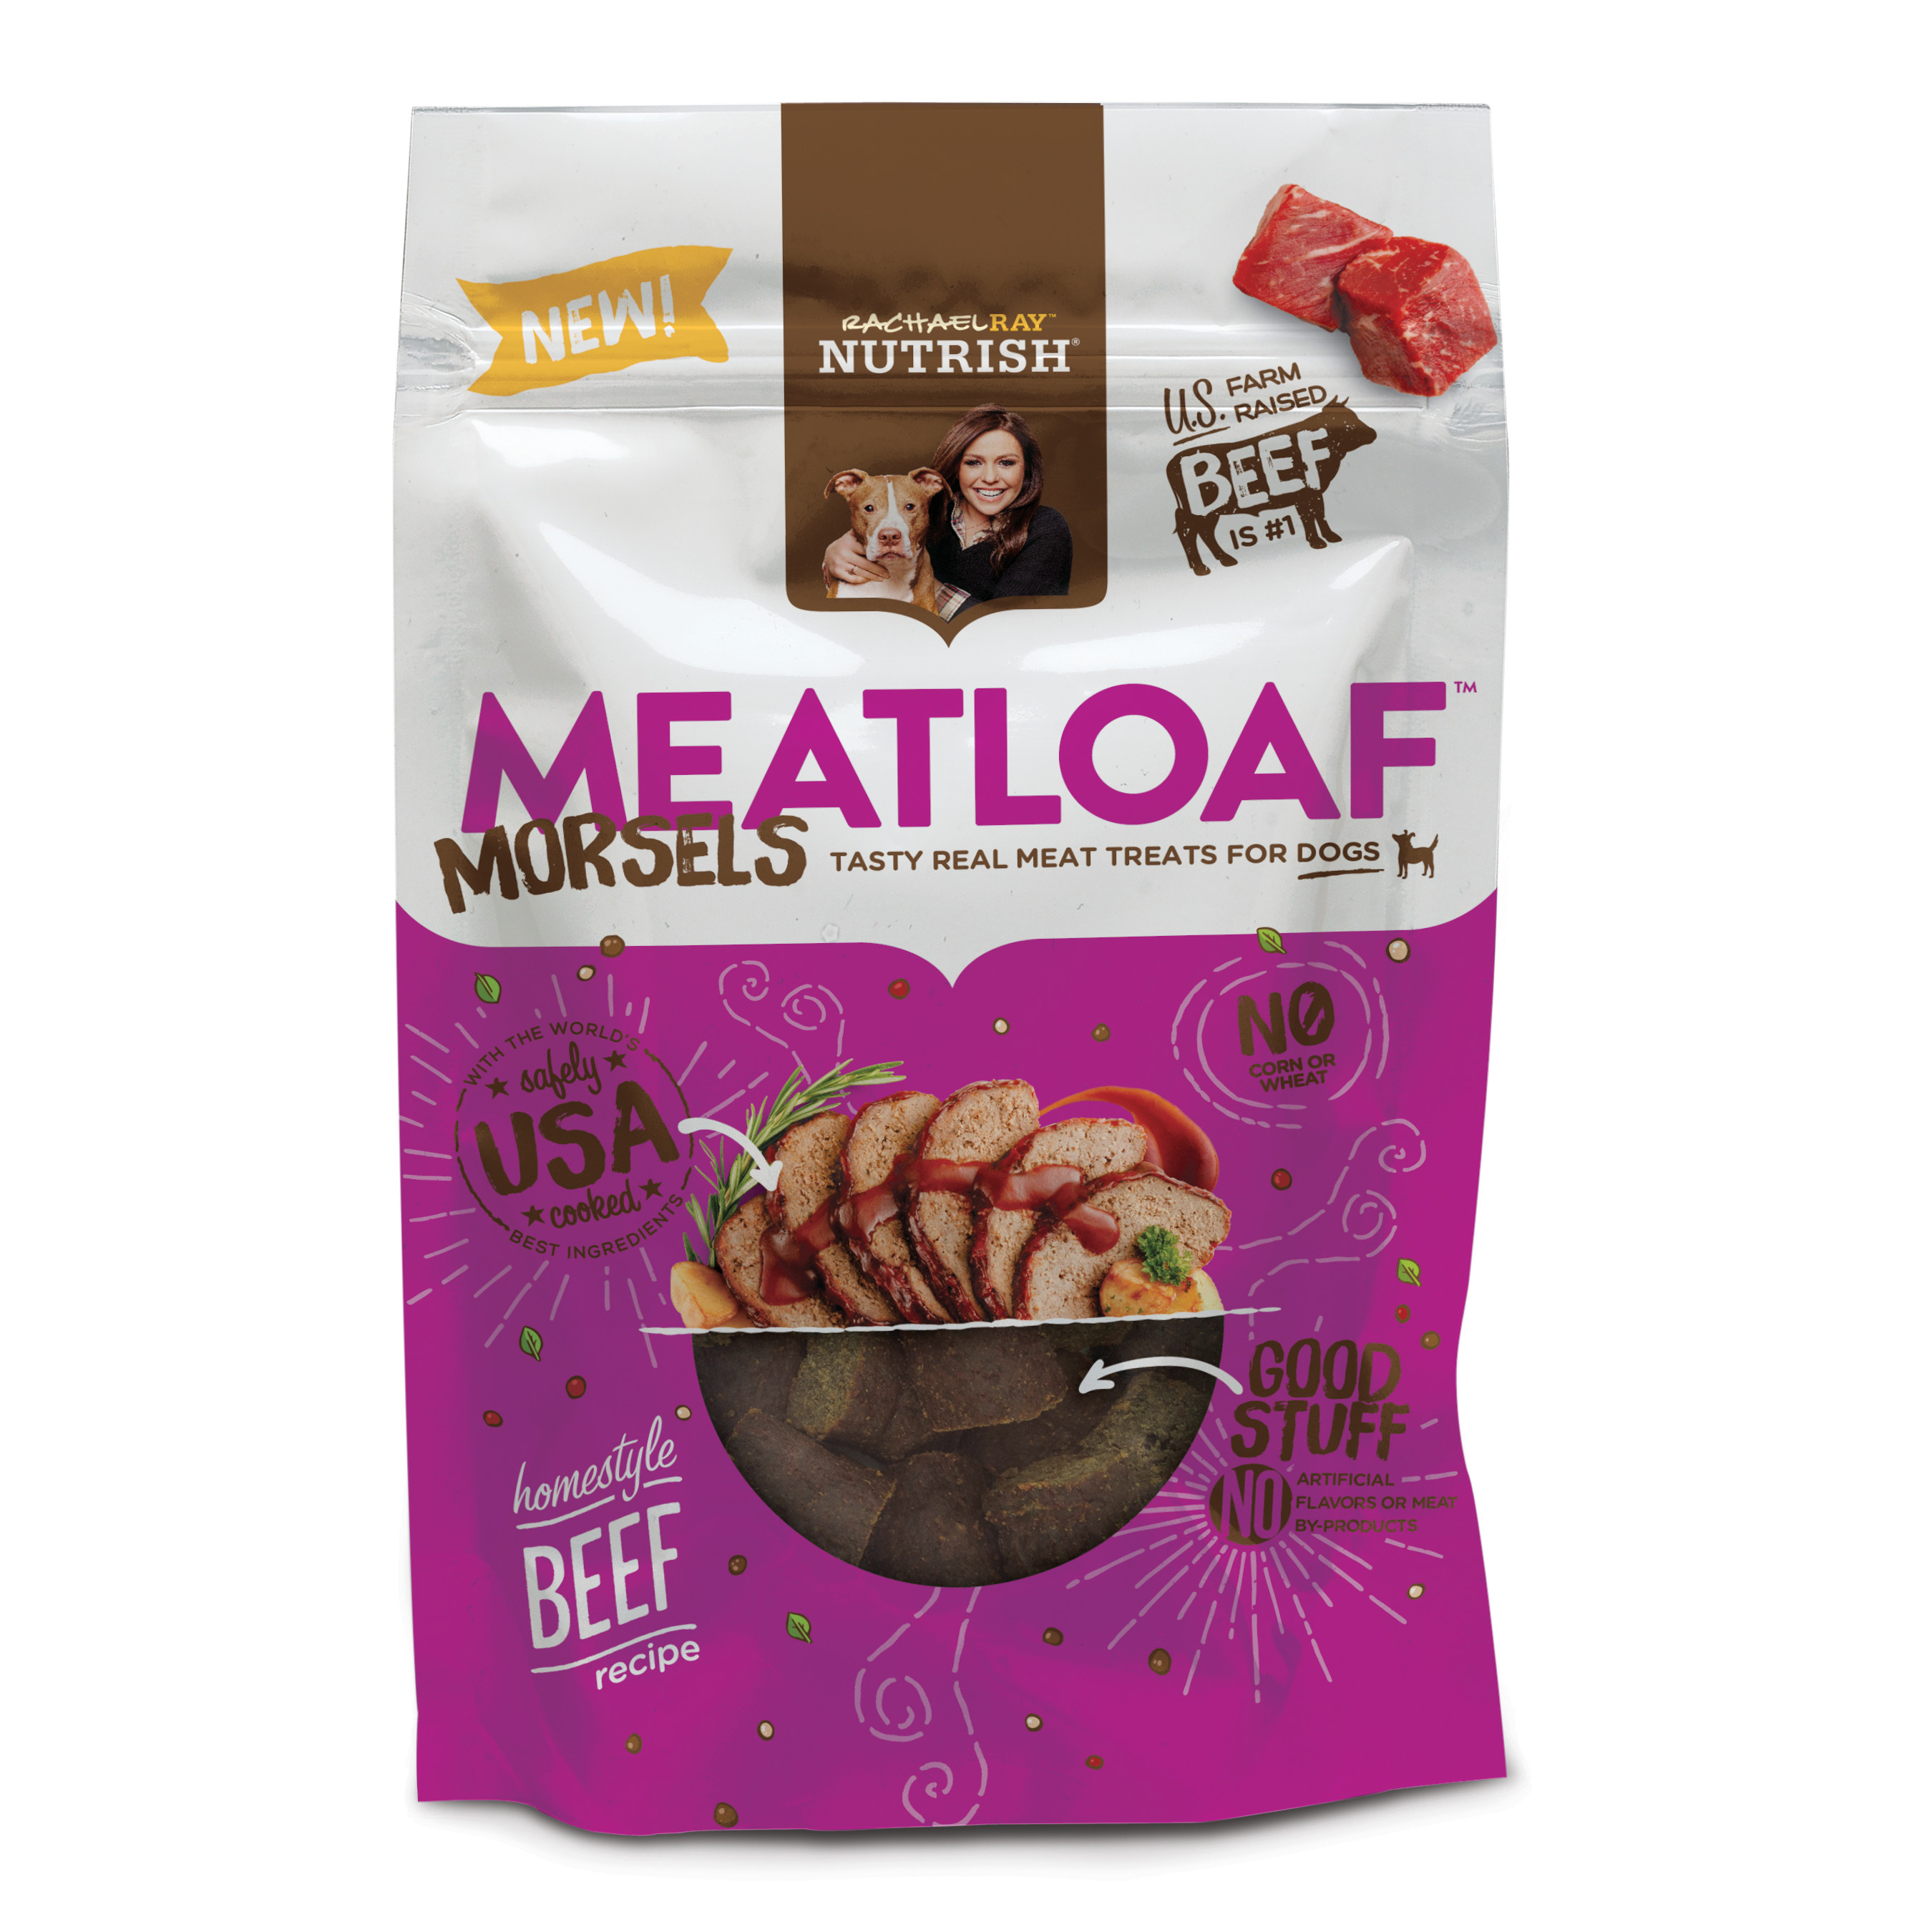 Rachael Ray Nutrish Meatloaf Morsels Dog Treats, Homestyle Beef Recipe, 3 oz by AINSWORTH PET NUTRITION